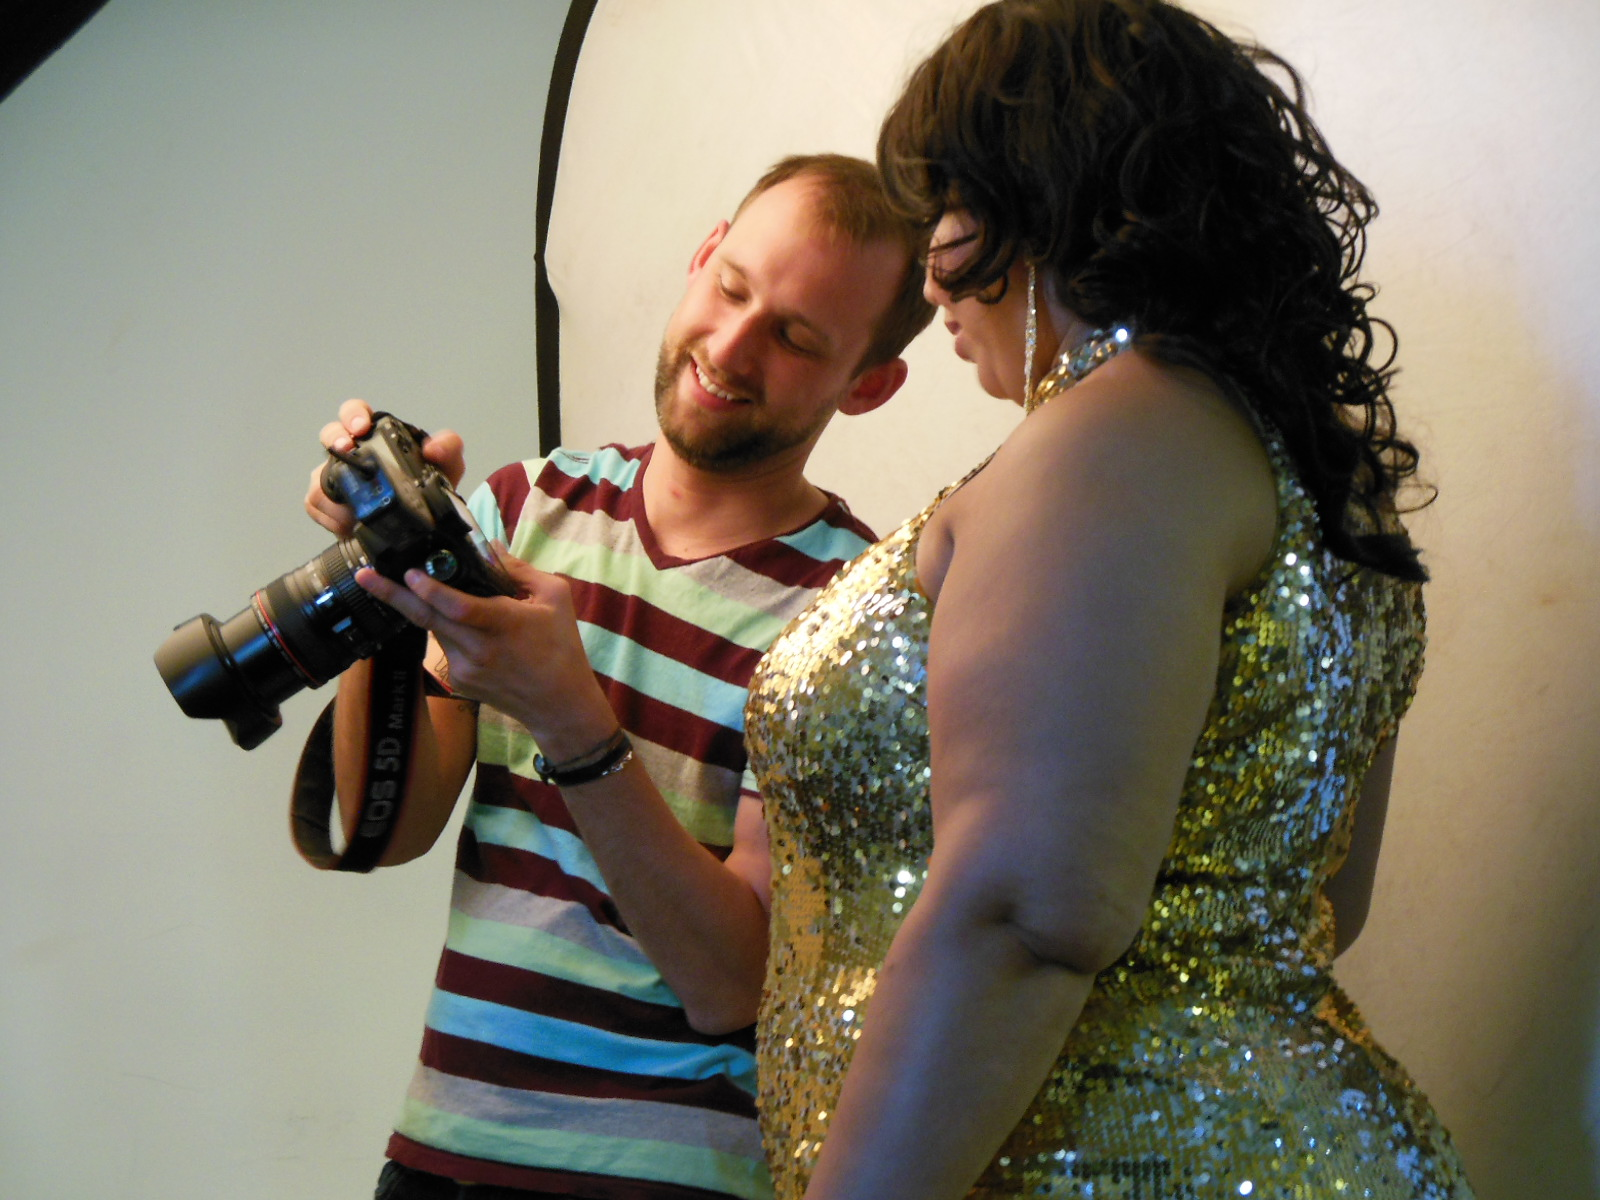 Le photographe Sean Scheidt avec l'artiste burlesque Dr Ginersnaps - Photo : Anthony C. Hayes